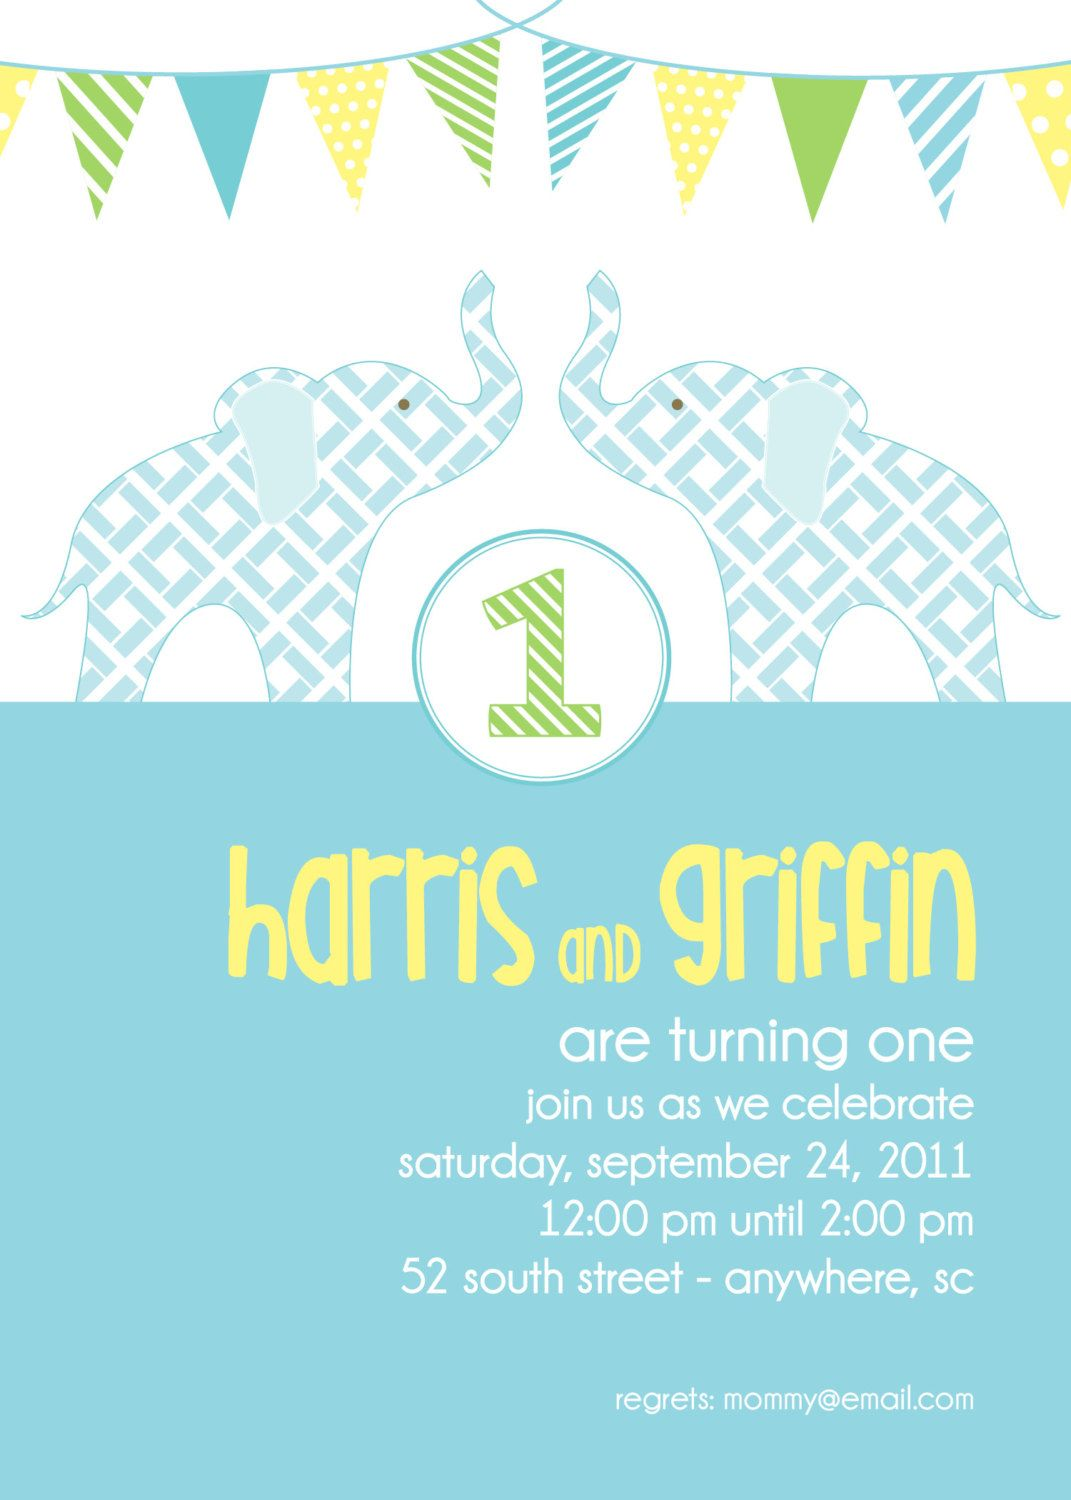 cute bday party invite found on etsy and it's local!